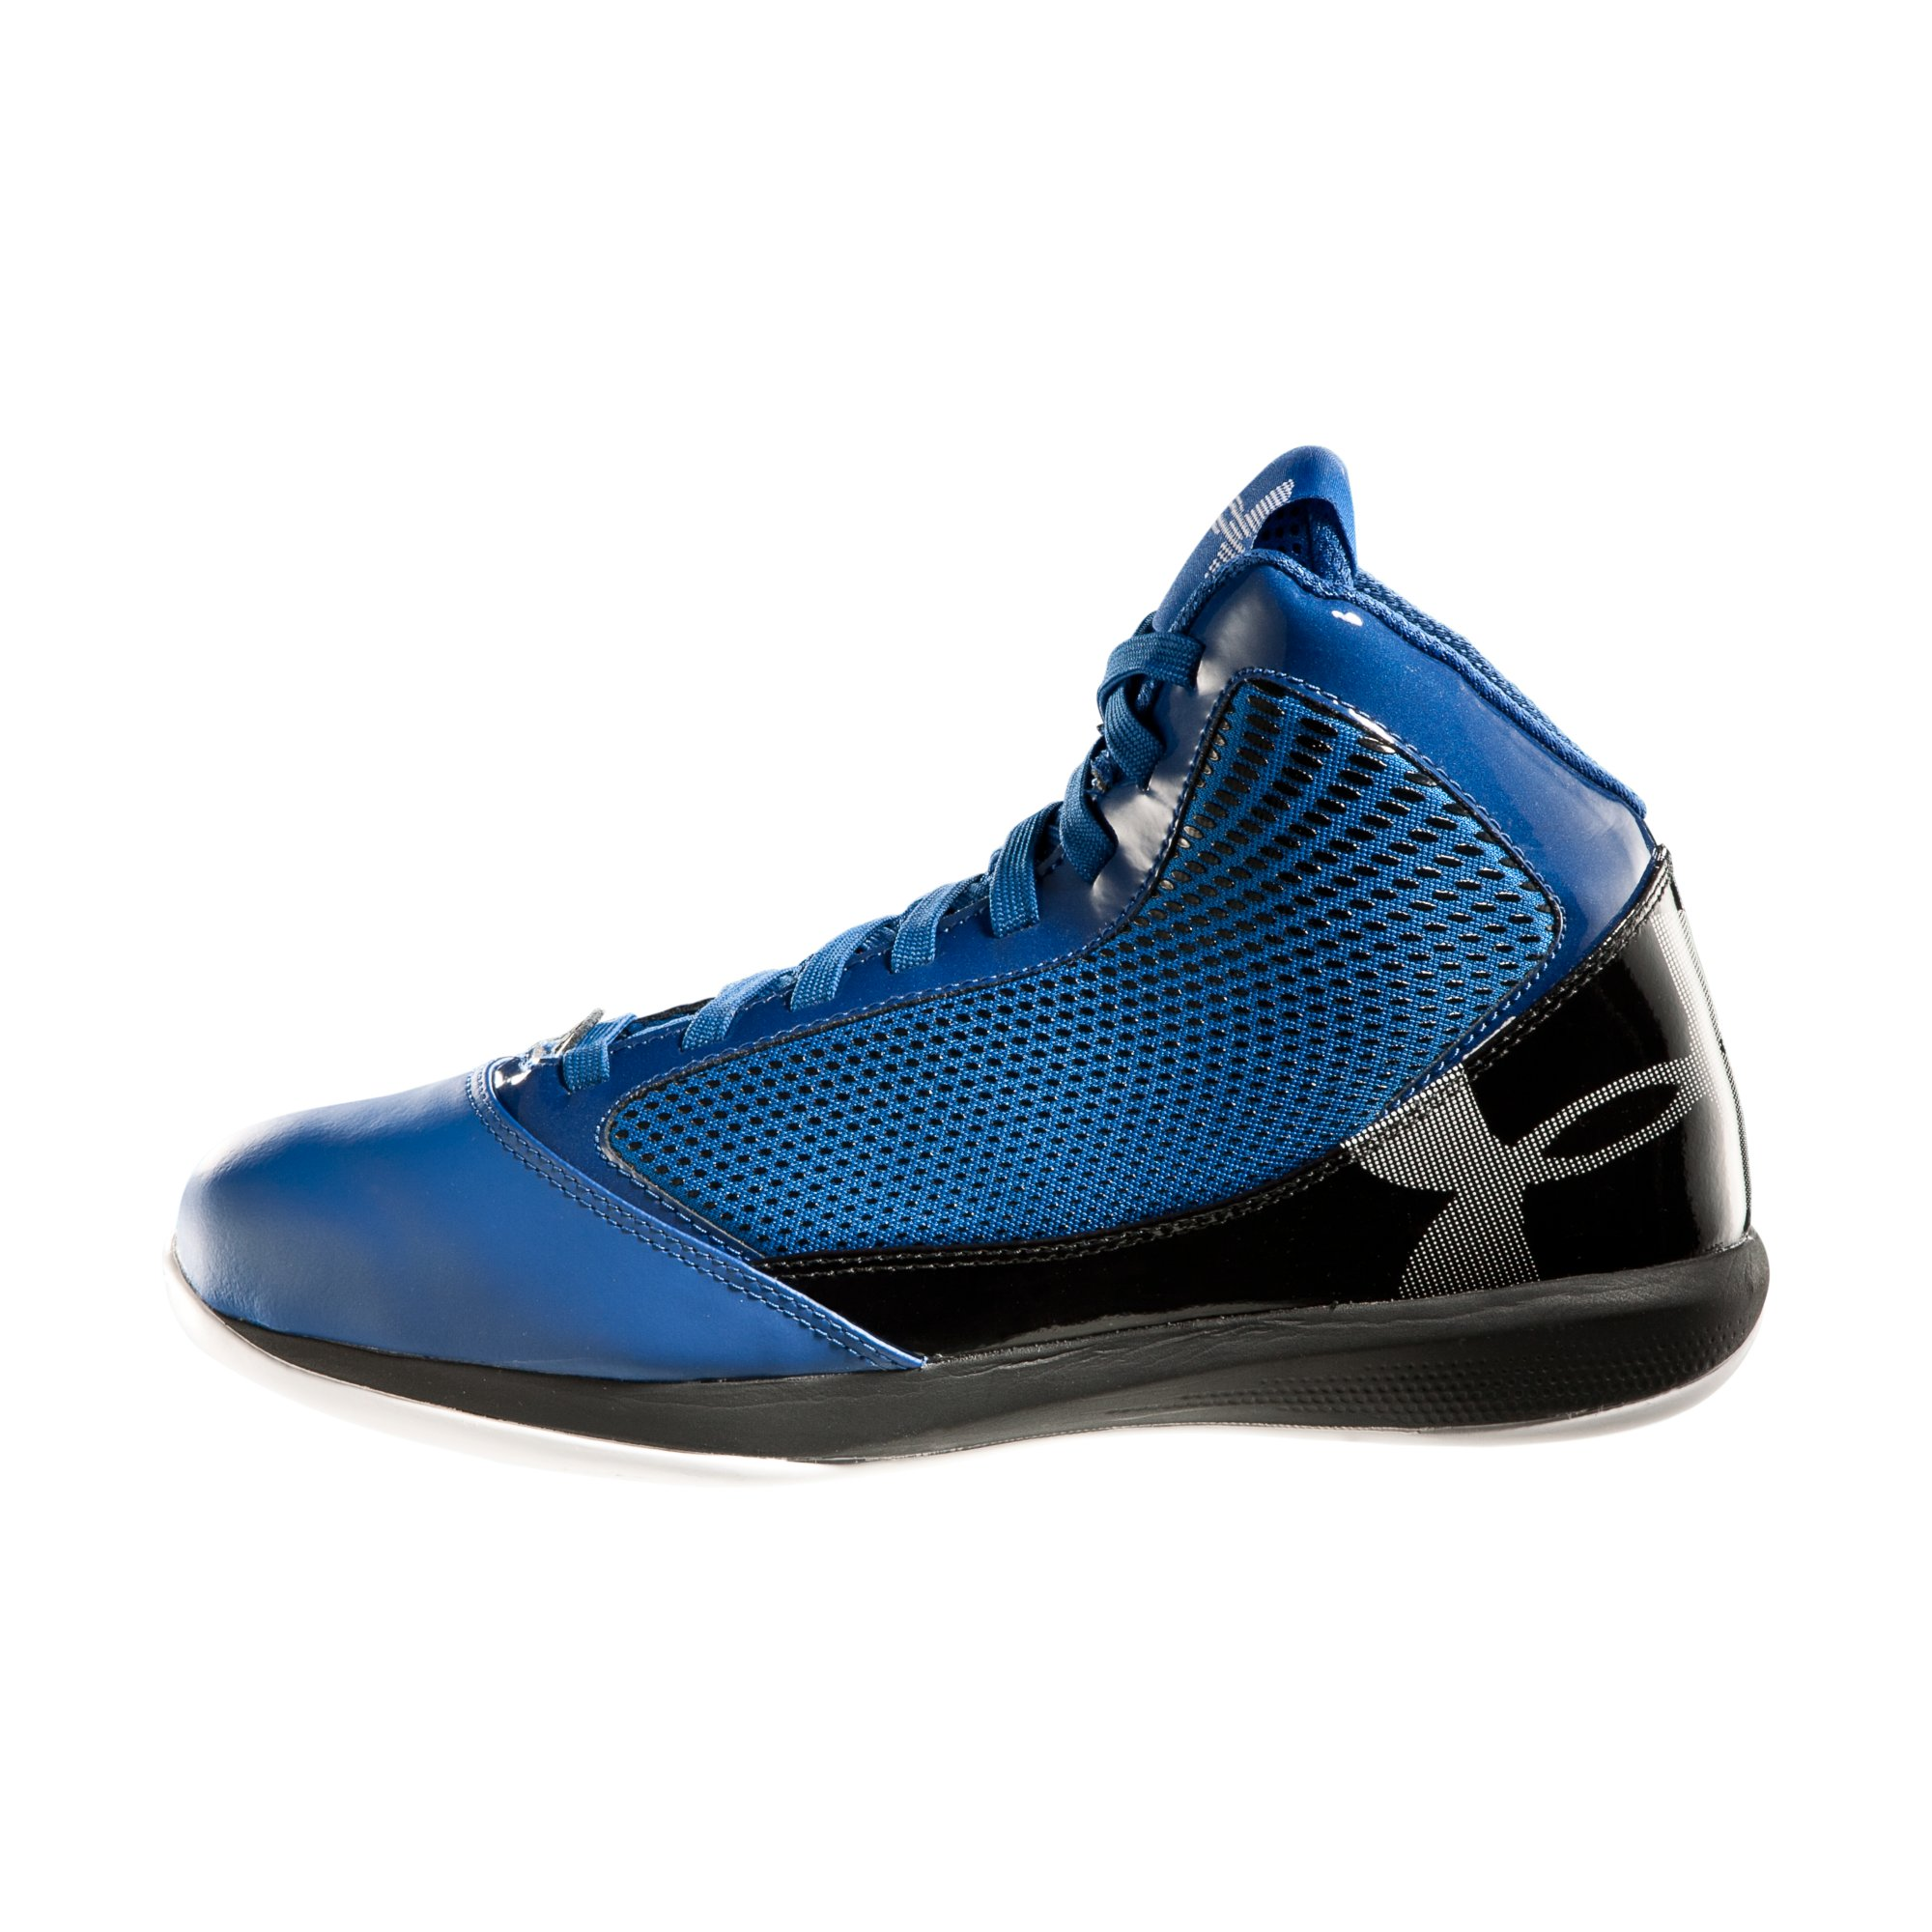 Under Armor Jet Basketball Shoes